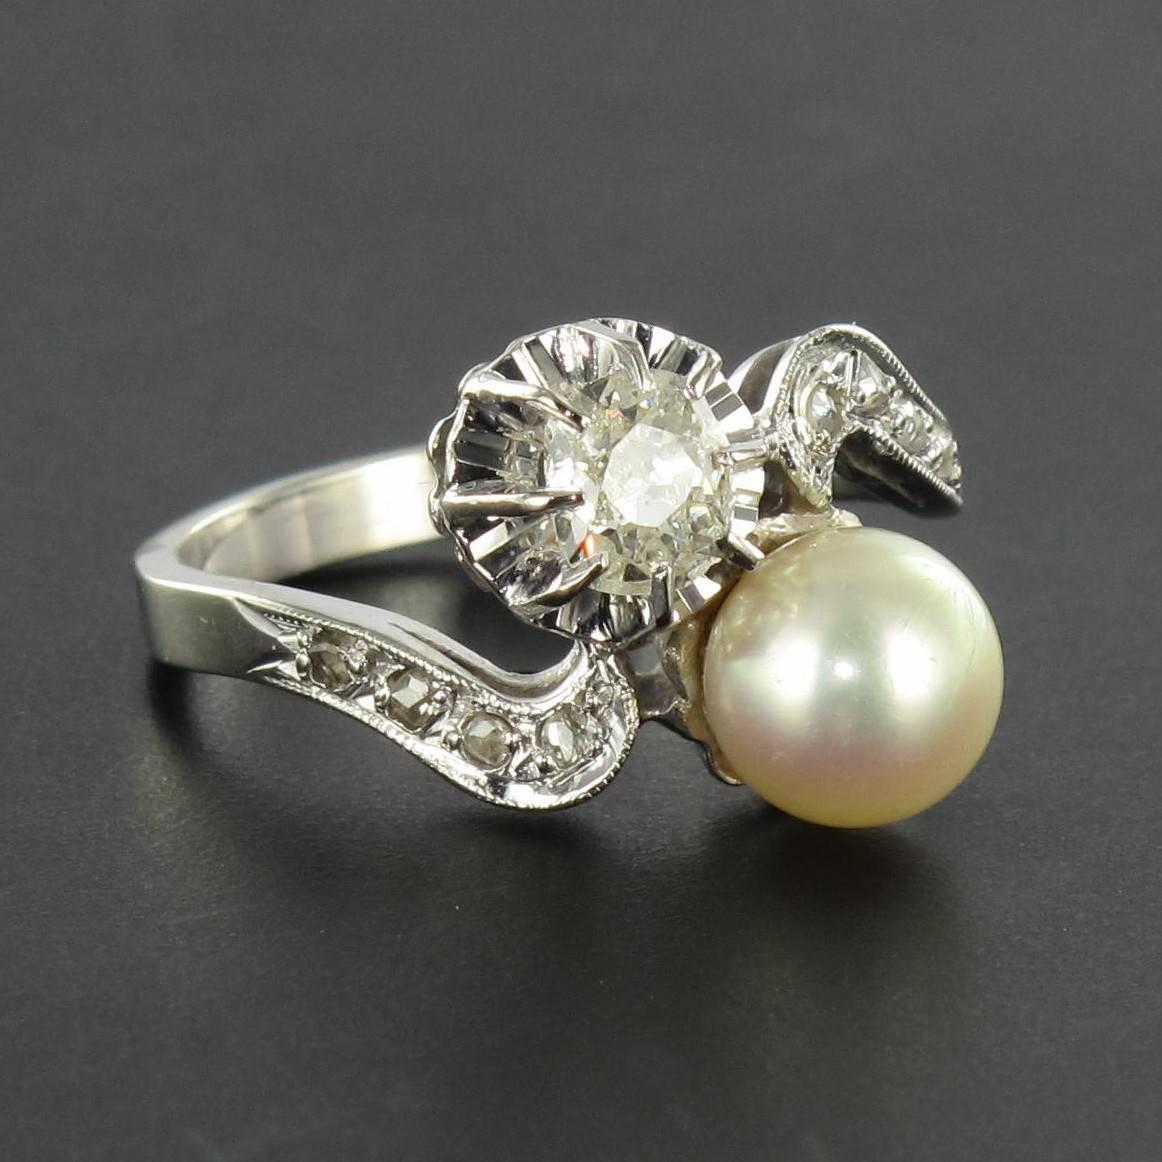 French Antique Pearl Diamond Gold Toi et Moi Ring at 1stdibs